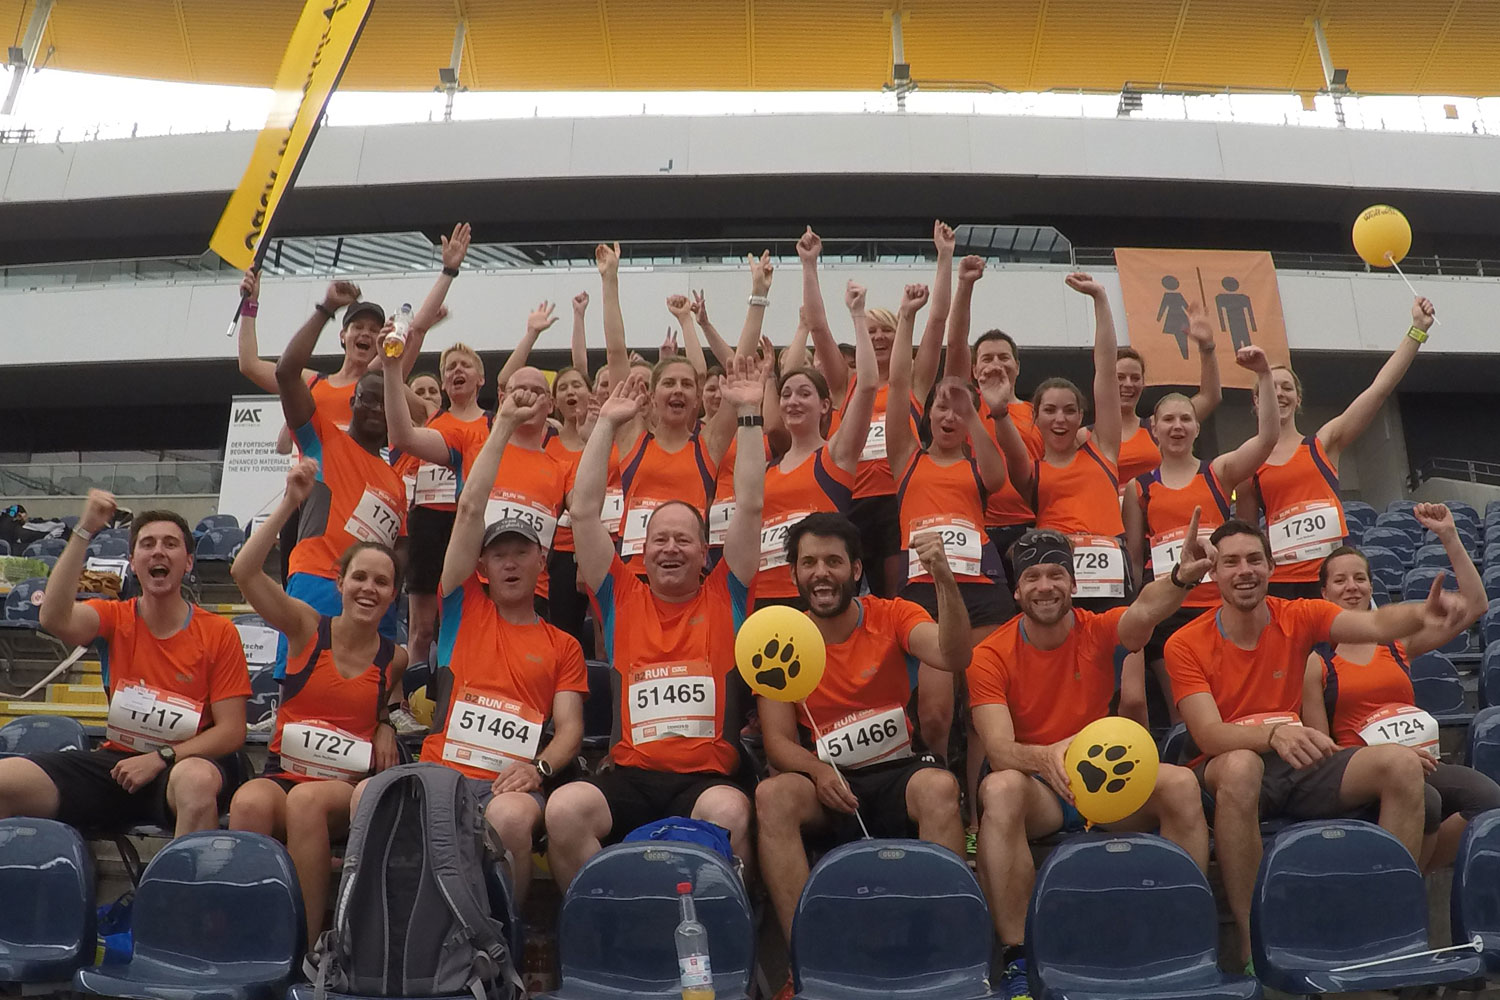 Top positions at B2RUN (German corporate running championship) 2015 in Frankfurt am Main